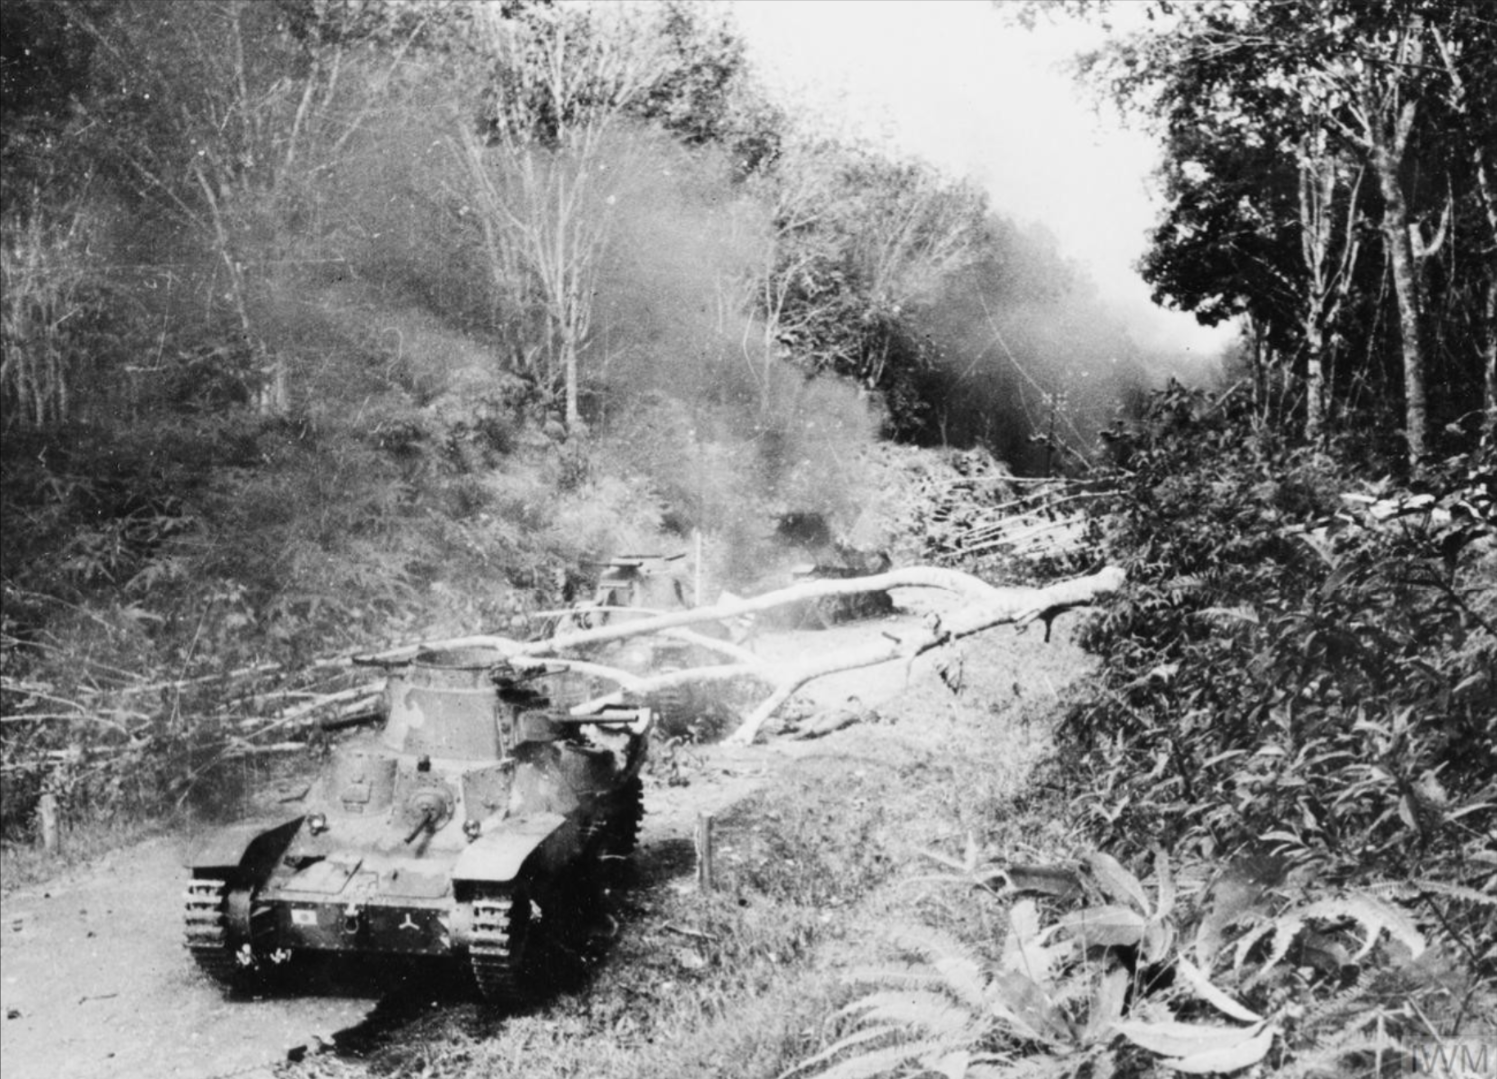 Knocked-out Japanese Type 95 Ha-Go tanks at a roadblock across the Muar - Parit Sulong road jan 42 - iwm